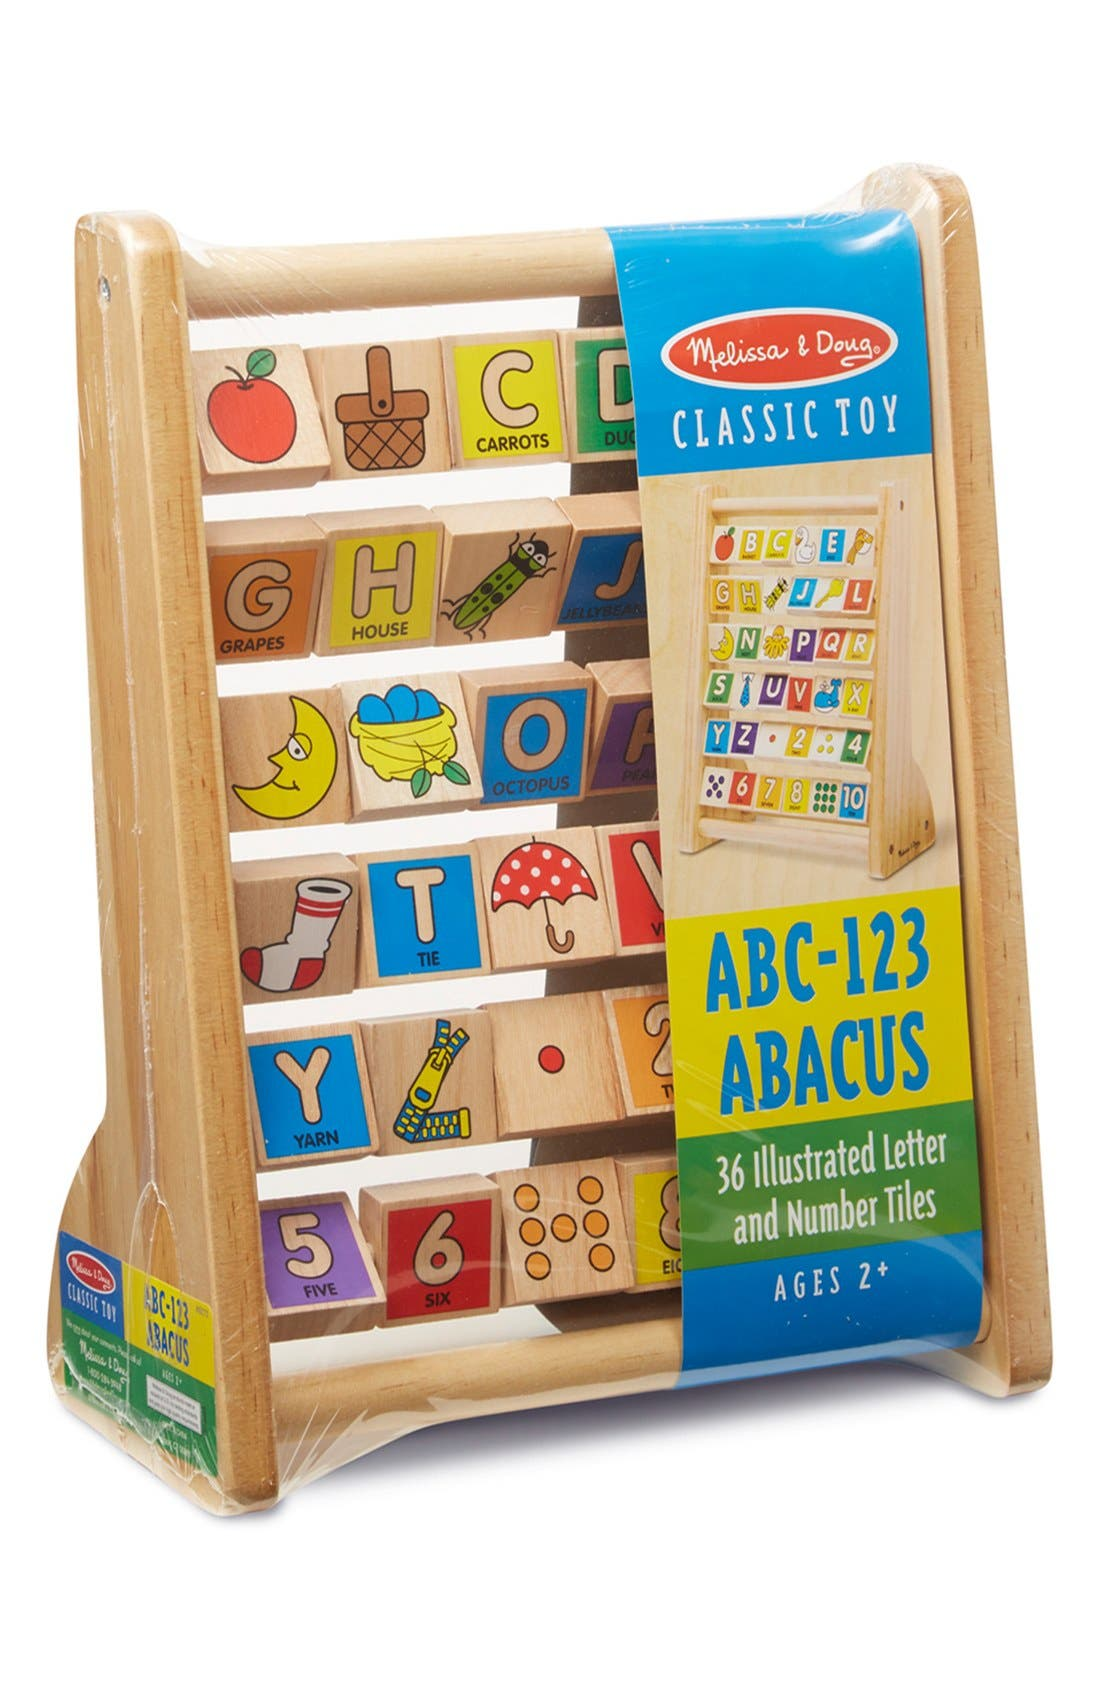 ABC-123 Abacus,                             Alternate thumbnail 2, color,                             BROWN